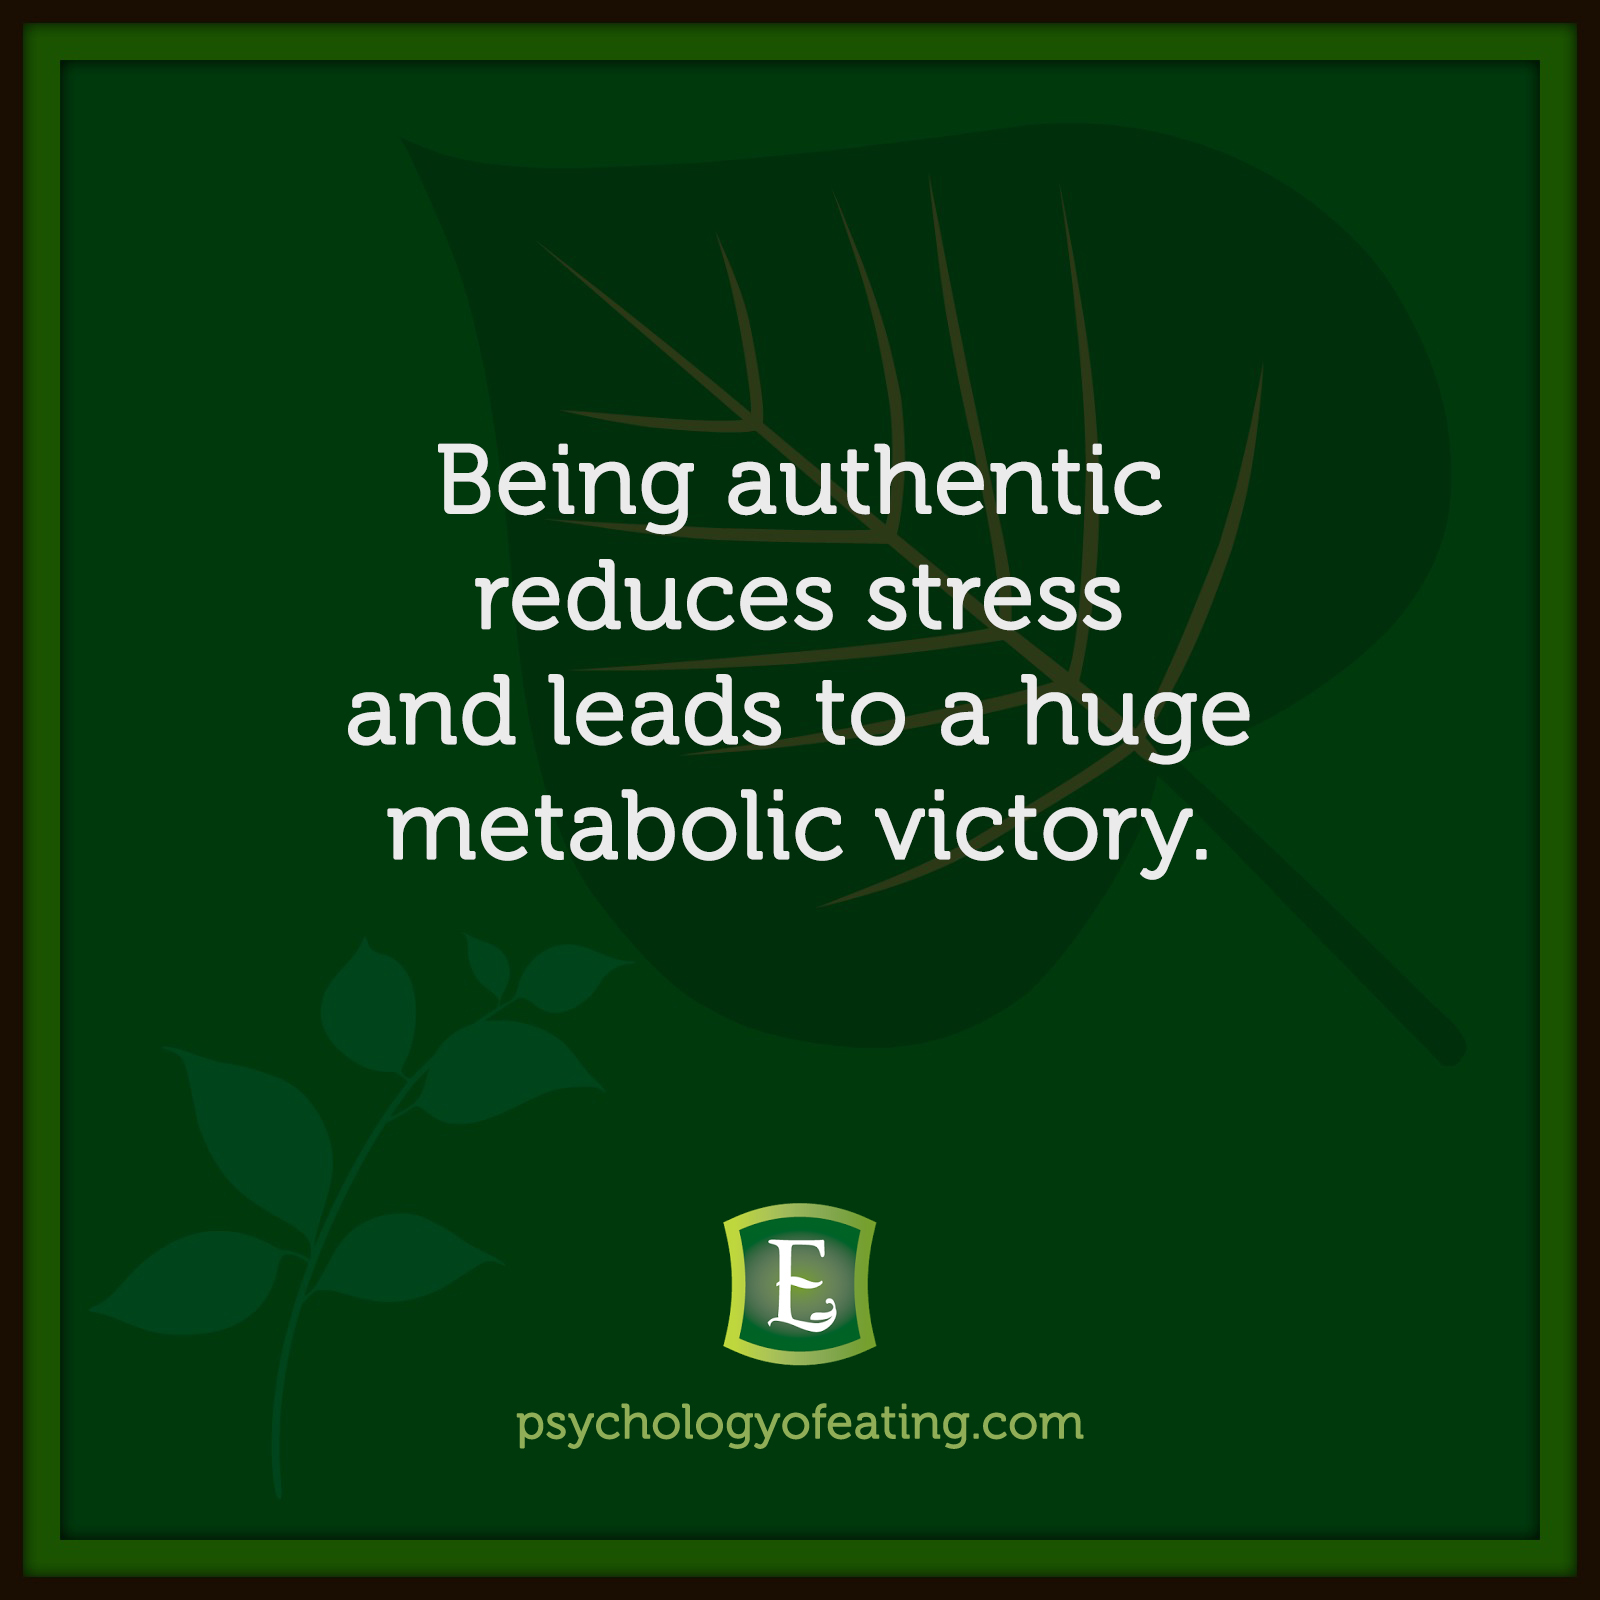 Being authentic reduces stress and leads to a huge metabolic victory. #health #nutrition #eatingpsychology #IPE